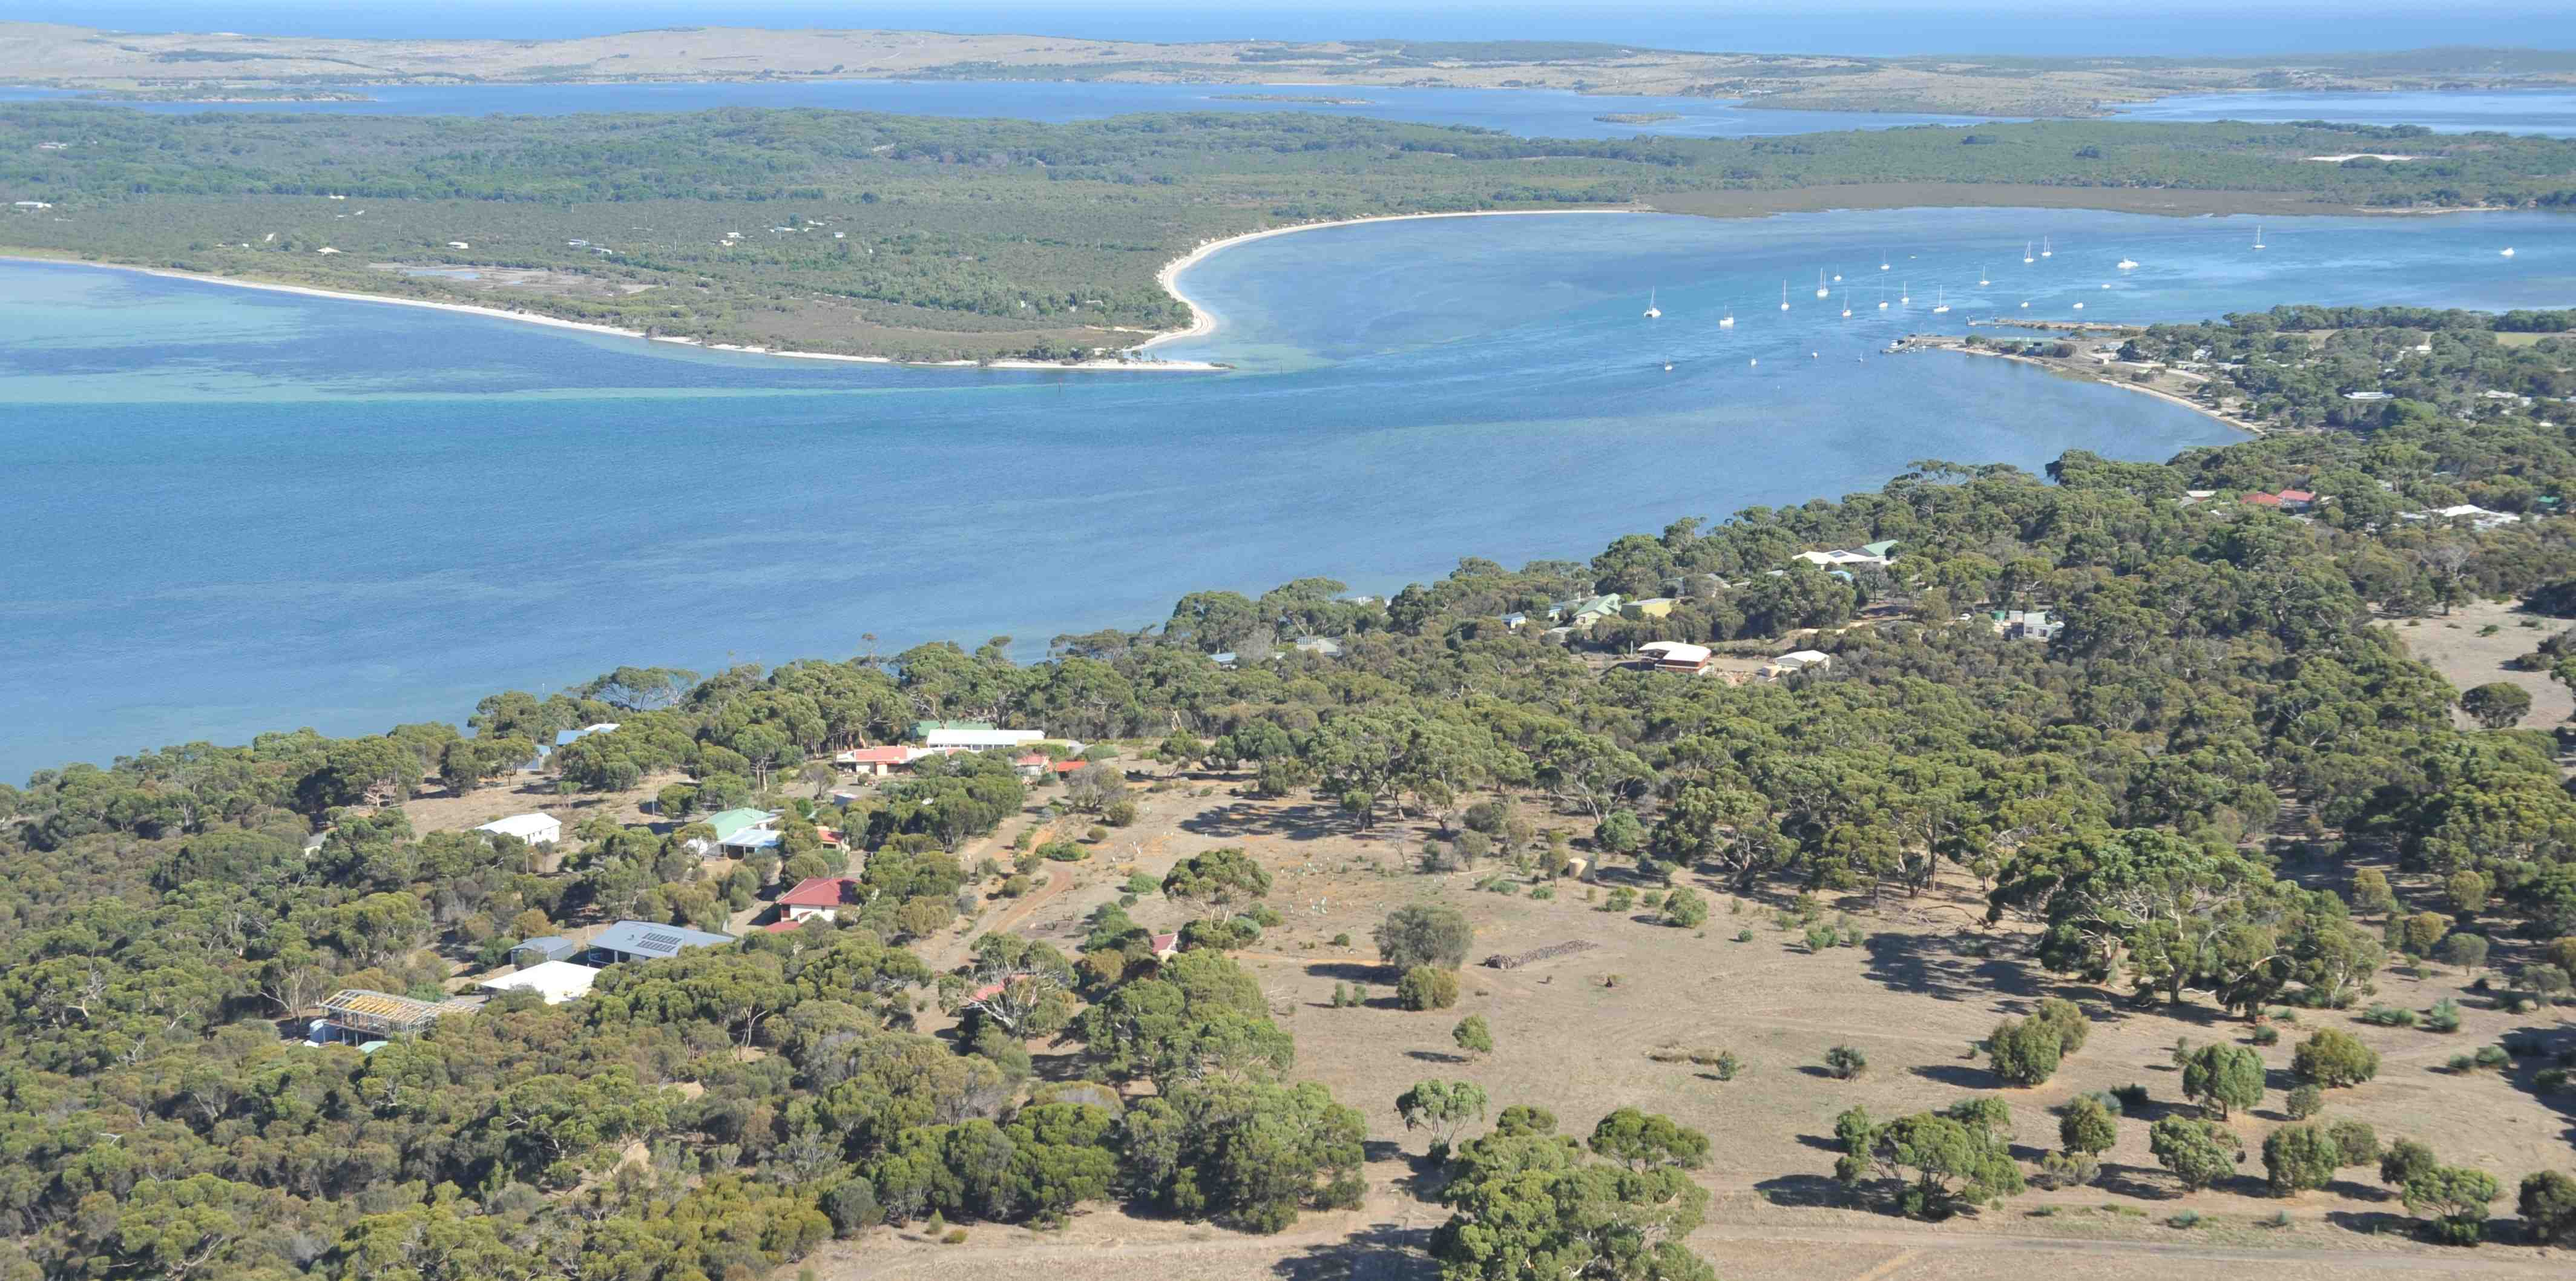 Aerial view on Buddhâyatana and Pelican Lagoon, with the Southern Ocean at the horizon